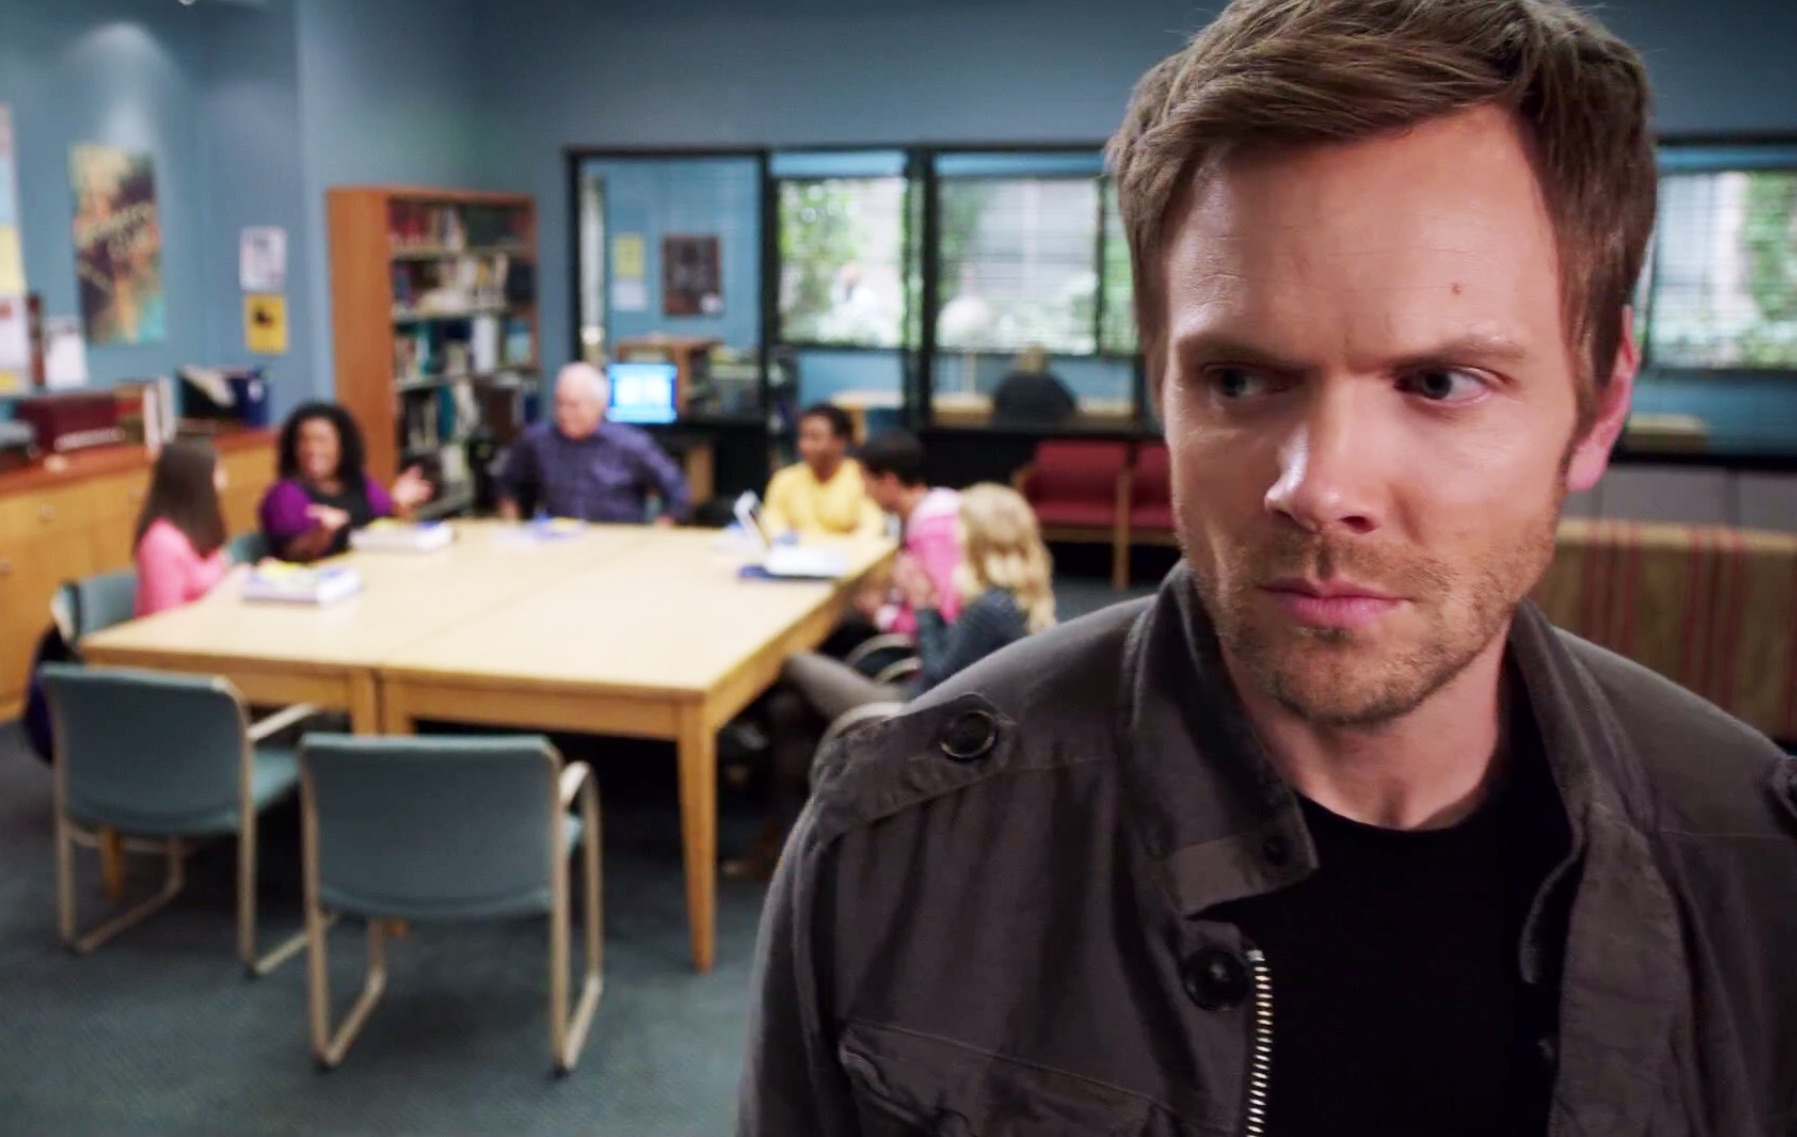 RIP 'Community' — Joel McHale says the cult hit is really dead